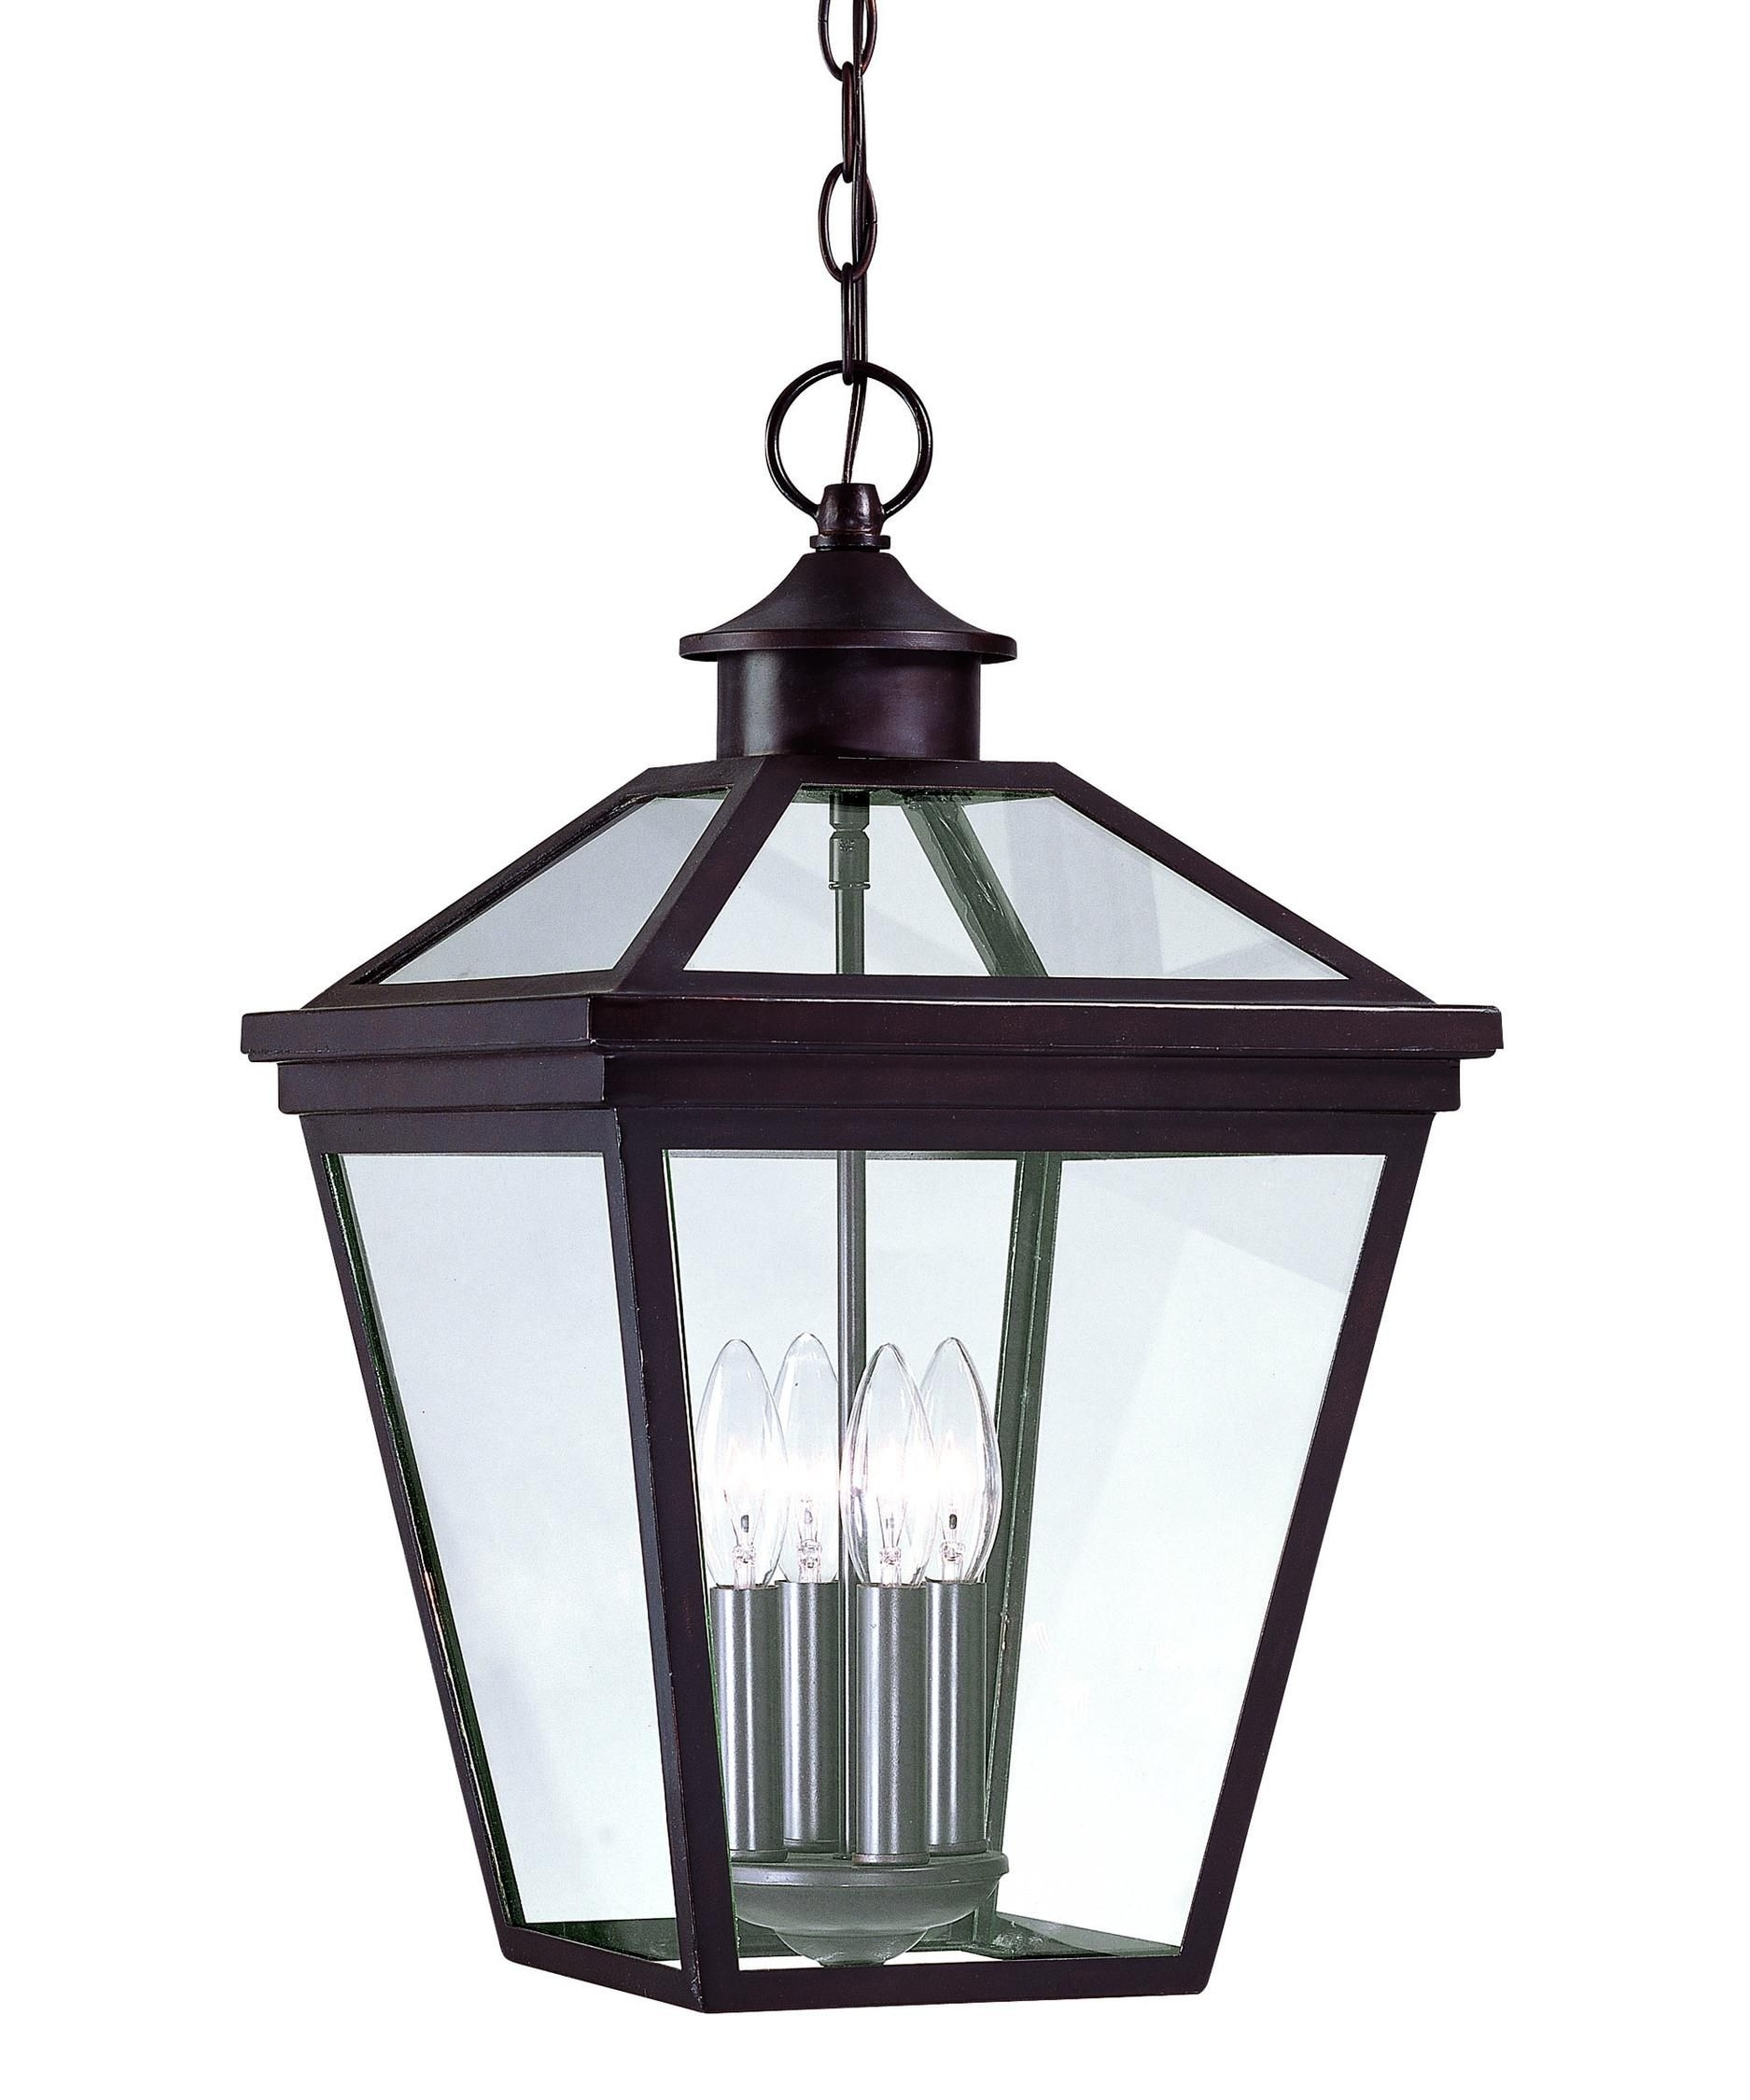 Savoy House Ellijay 4 Light Outdoor Hanging Lantern | Capitol With Outdoor Hanging Lights (View 13 of 15)